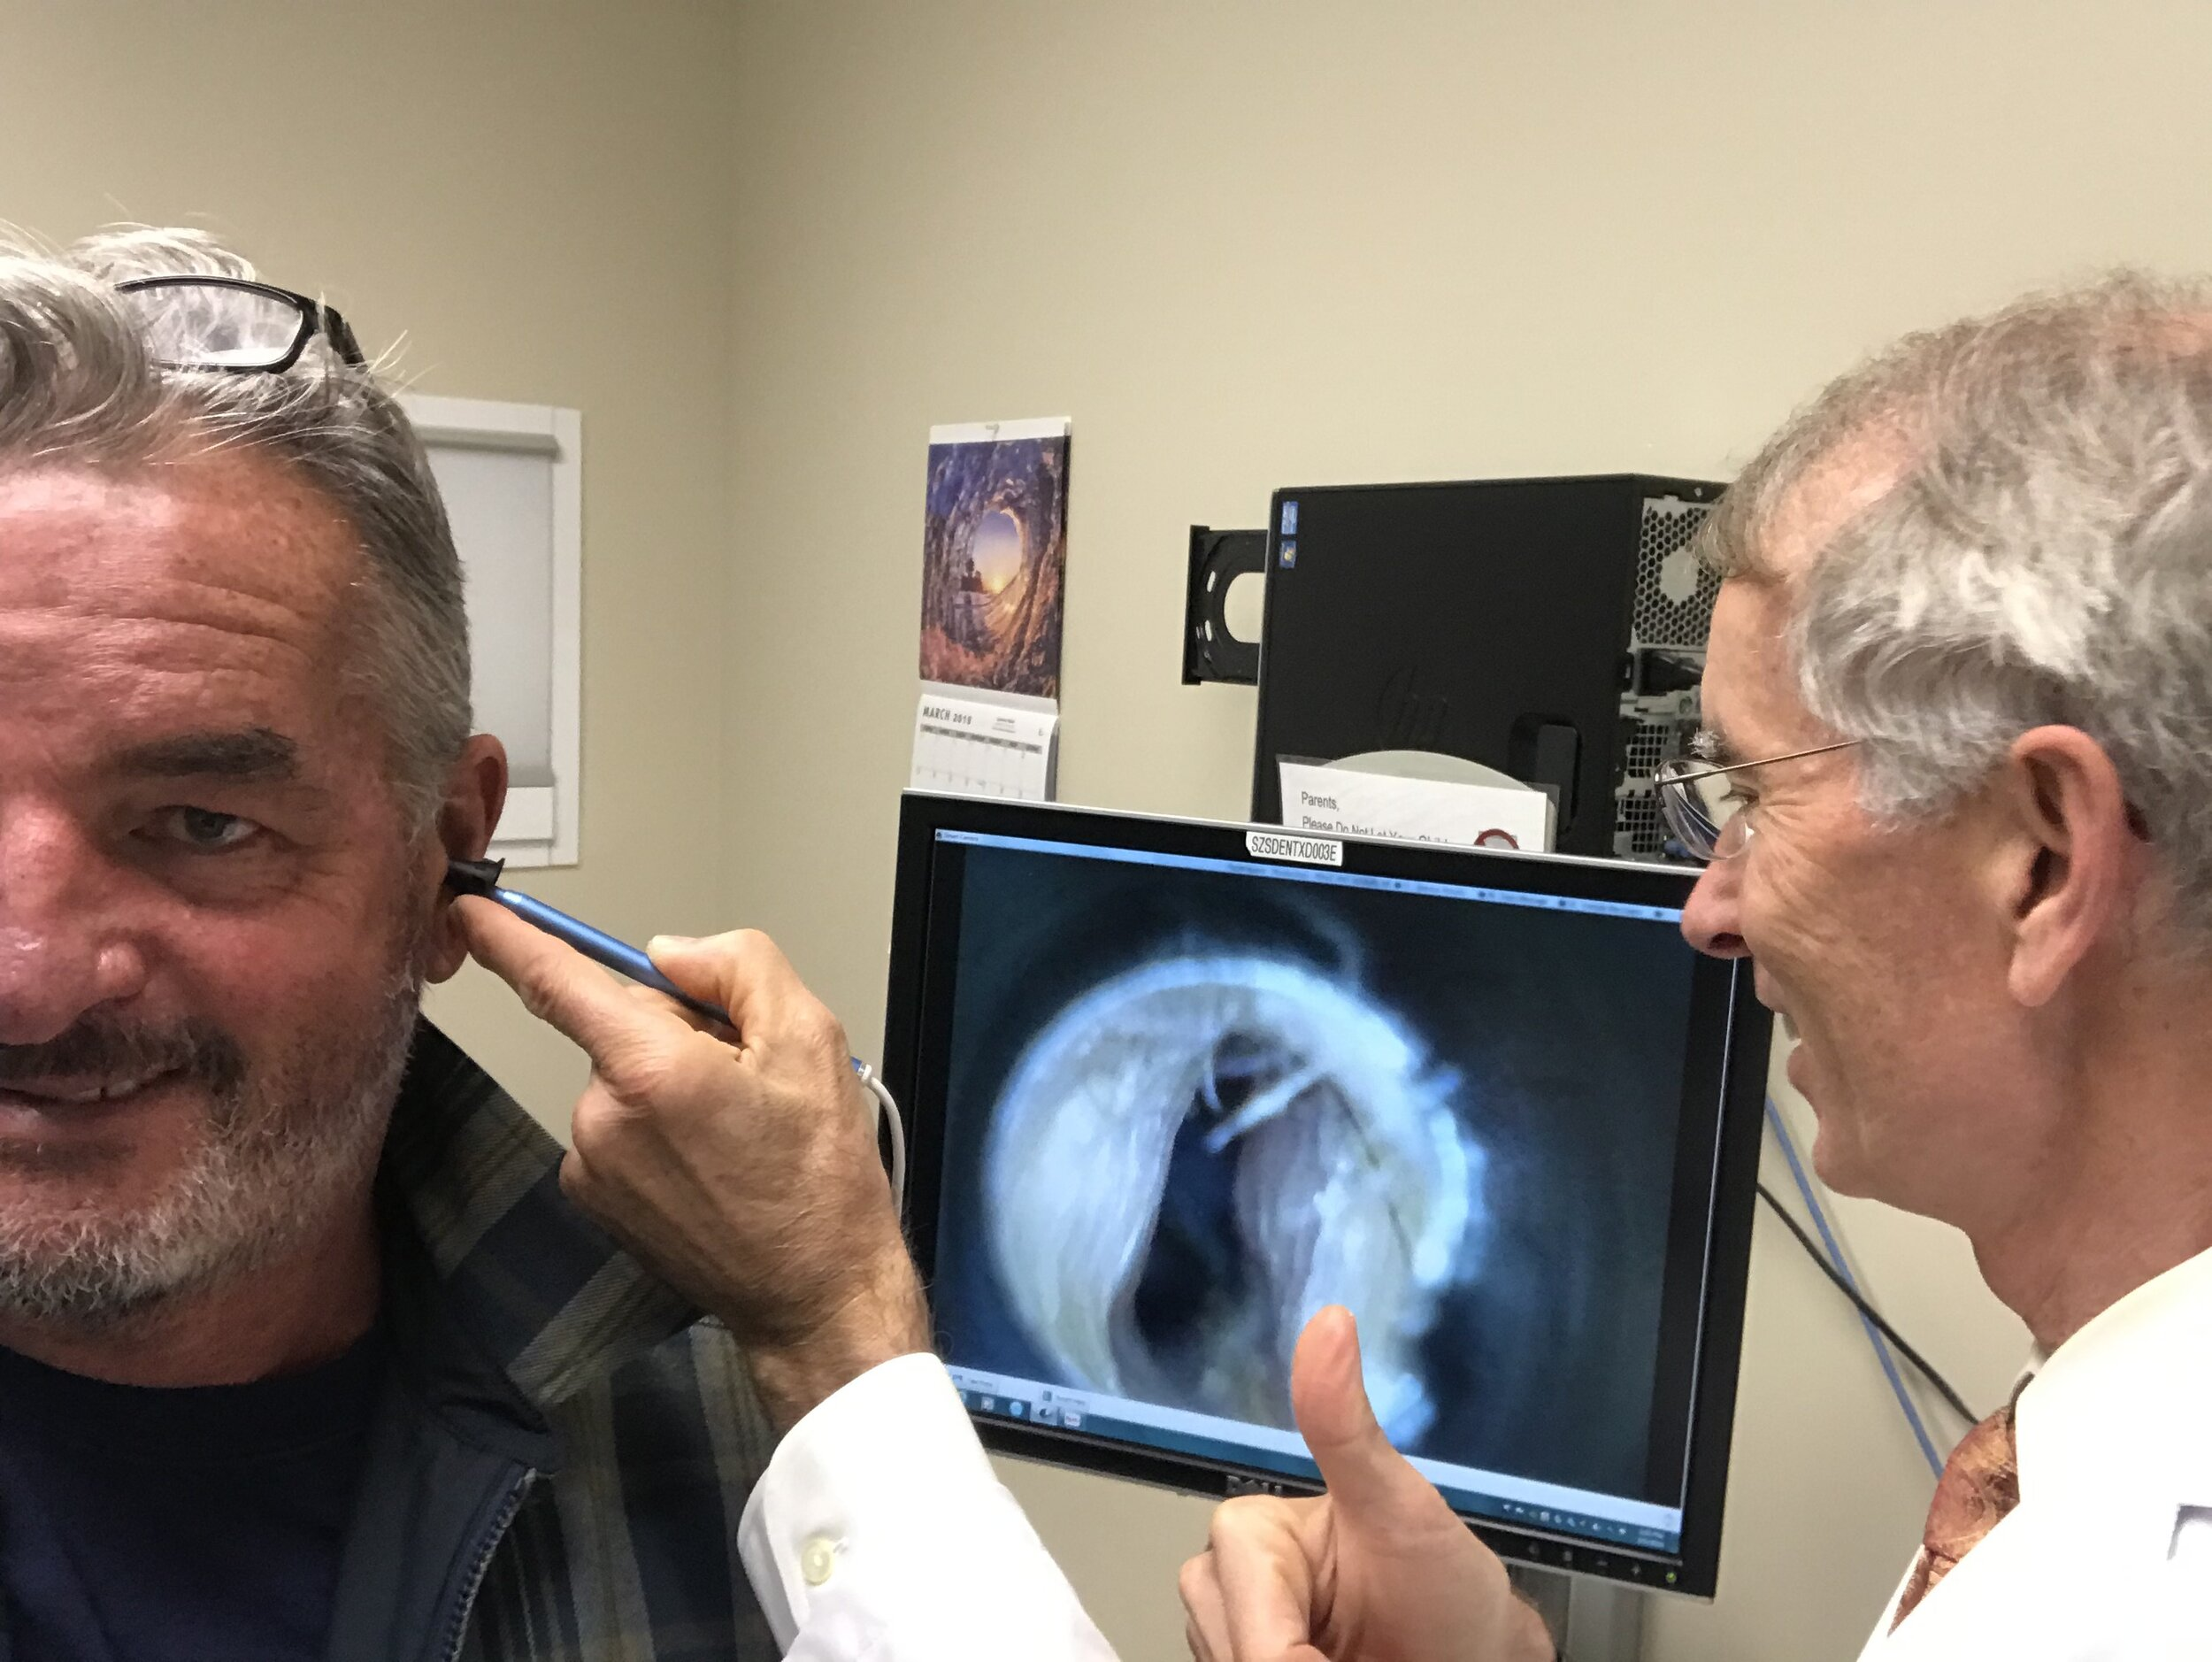 He is the Guru of Surfer's Ear, and makes his annual appearance on the Off the Lip Radio Show, and will once again offer FREE surfers ear check ups.